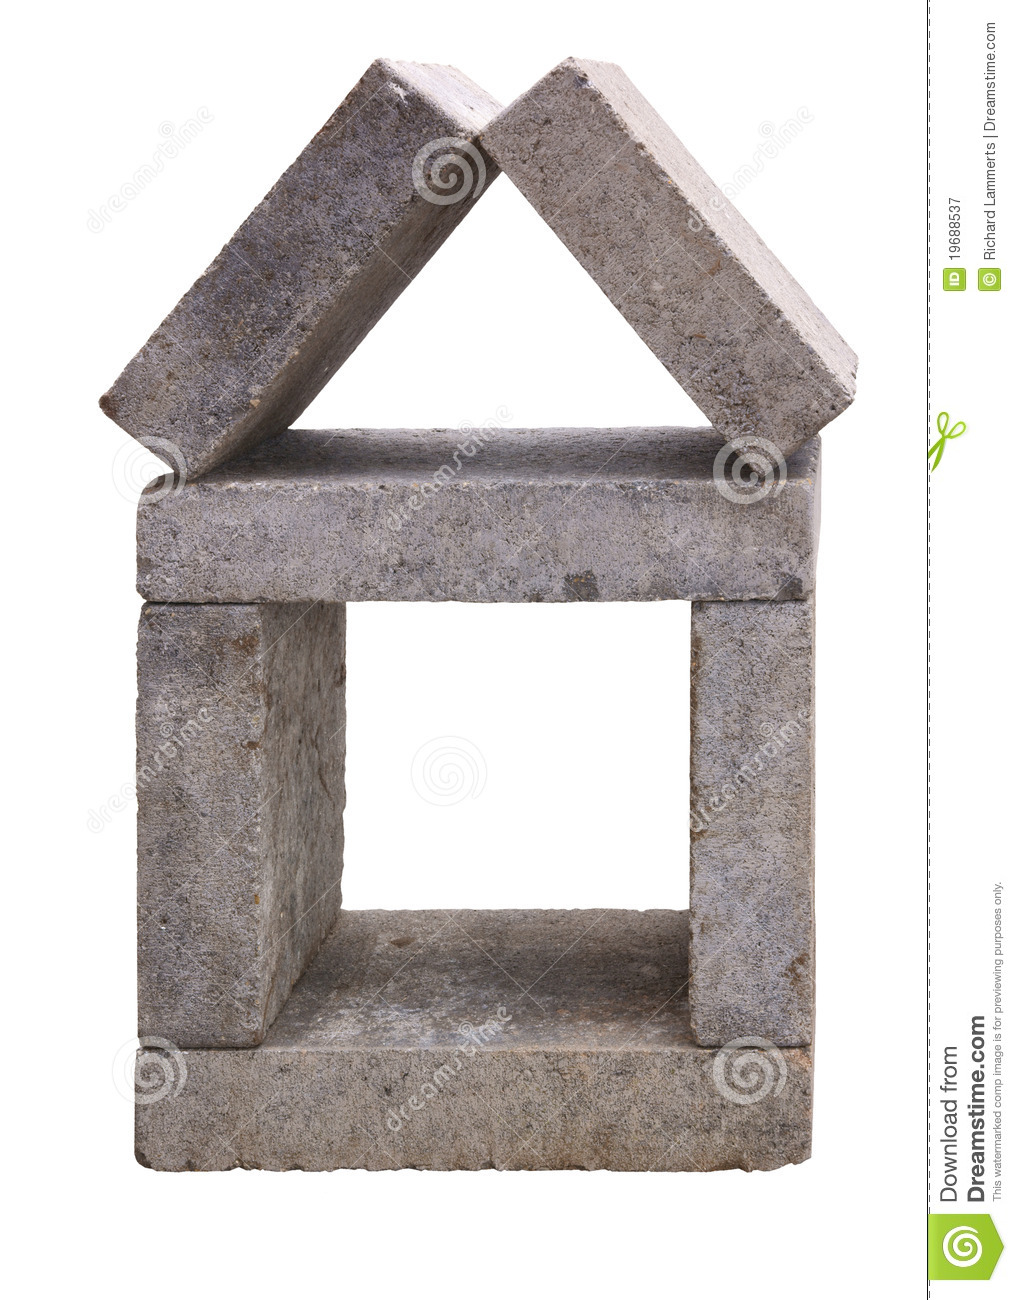 House made of concrete building blocks royalty free stock photography image 19688537 - Houses made concrete blocks ...